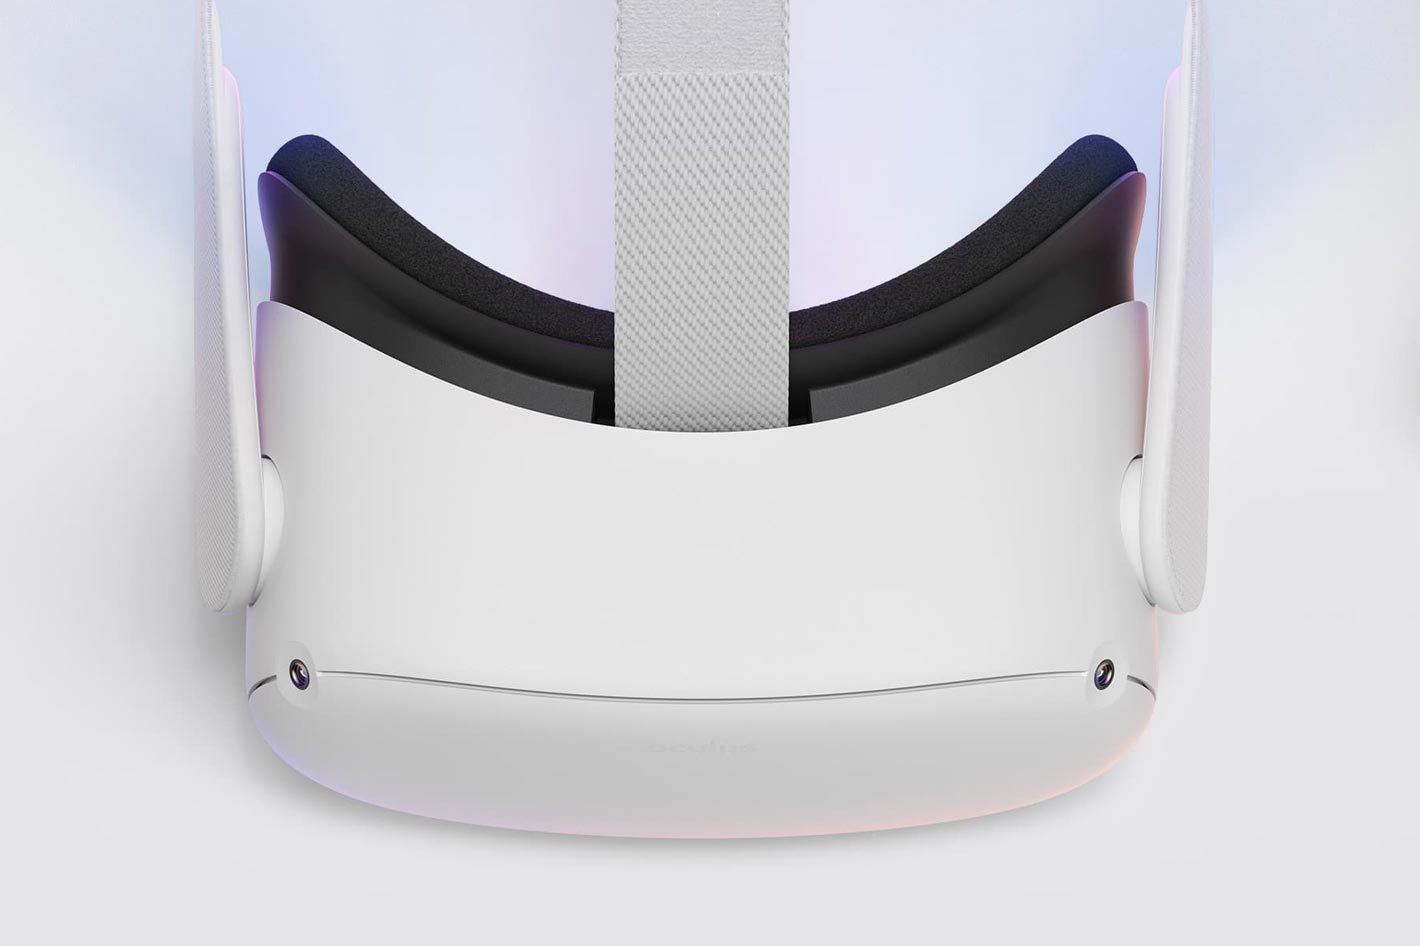 Oculus Quest 2: the next step in VR or a Facebook dead-end?